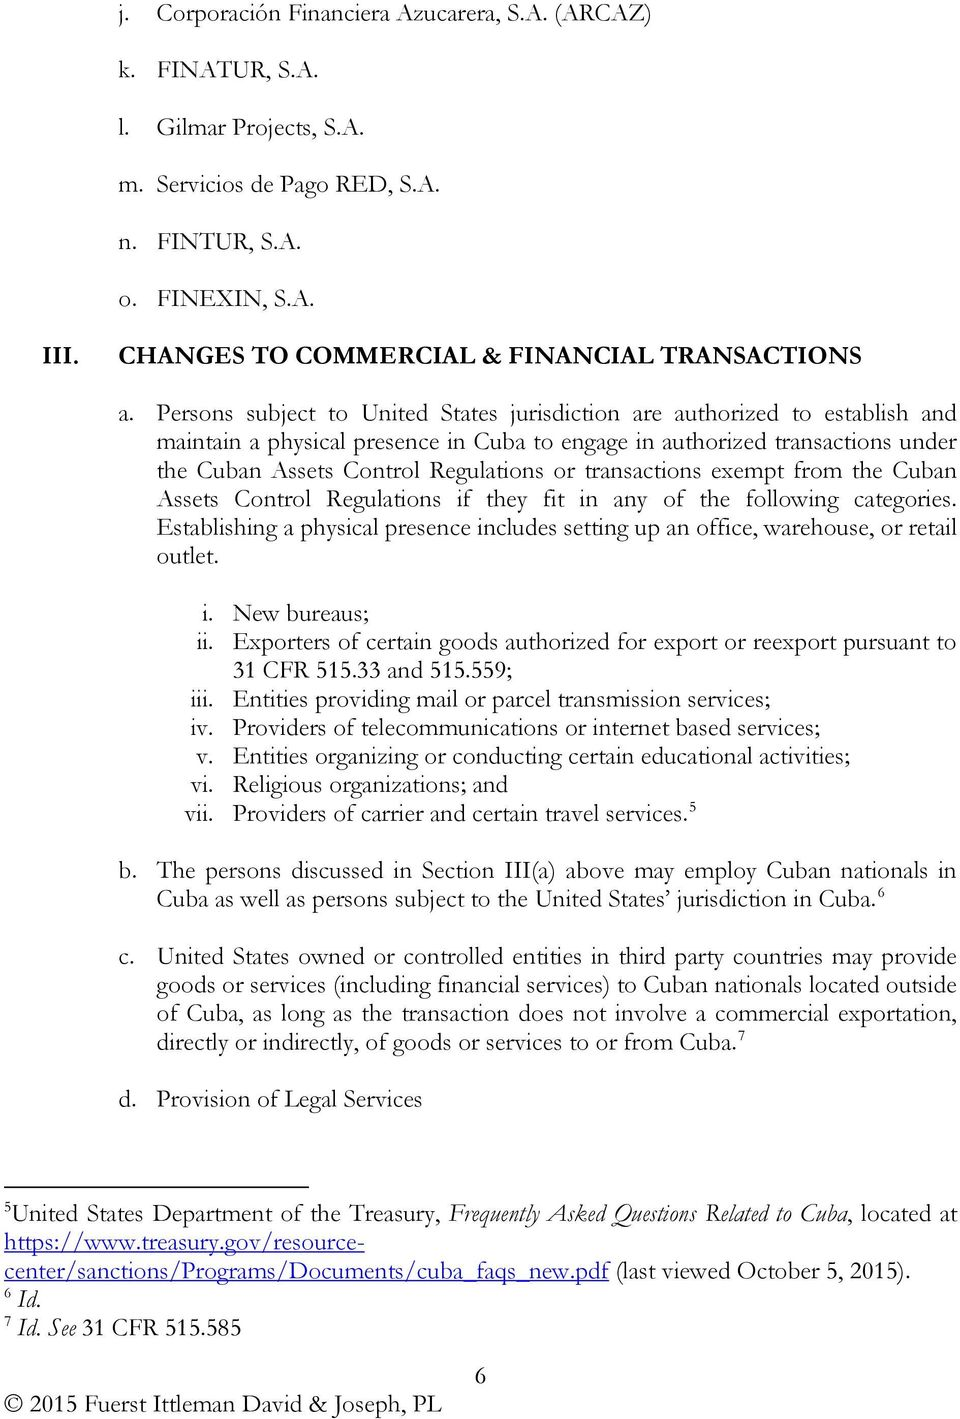 Persons subject to United States jurisdiction are authorized to establish and maintain a physical presence in Cuba to engage in authorized transactions under the Cuban Assets Control Regulations or